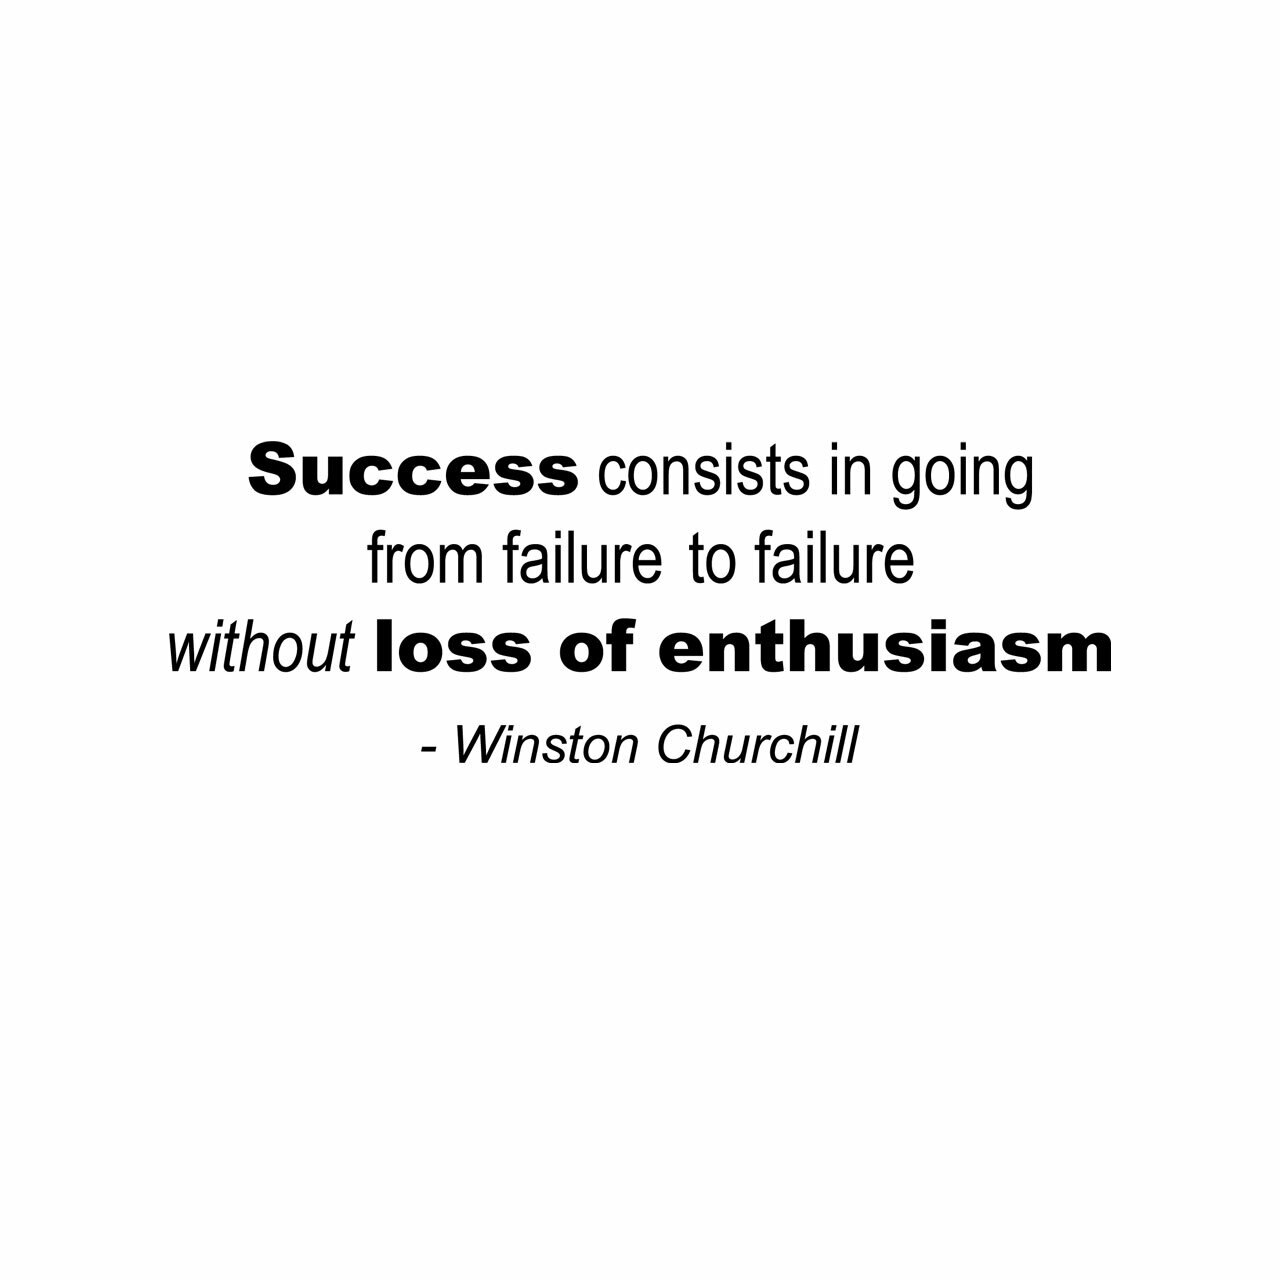 """""""Success consists of going from failure to failure without loss of enthusiasm"""" - Winston Churchill written in black on multiple lines on a white background"""